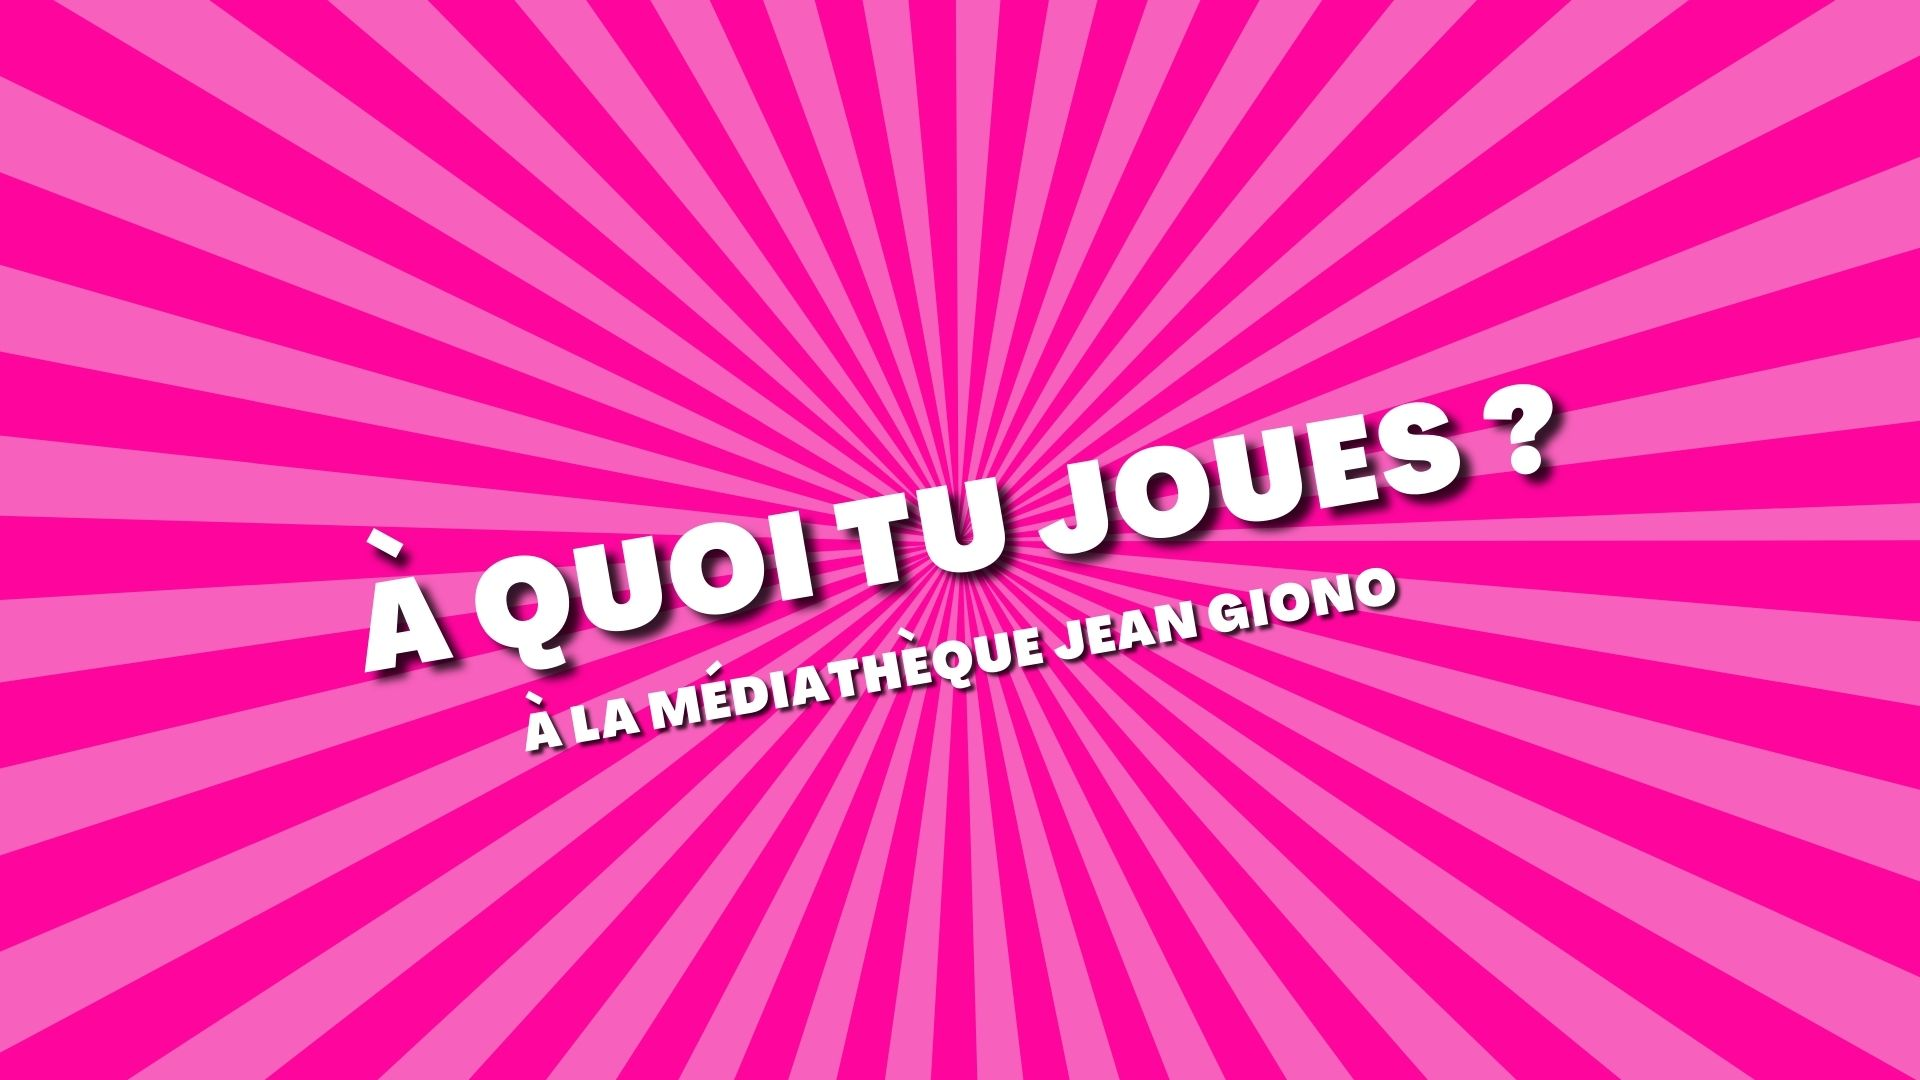 """ A quoi tu joues ?"" n° 4 : Mollo l'escargot 